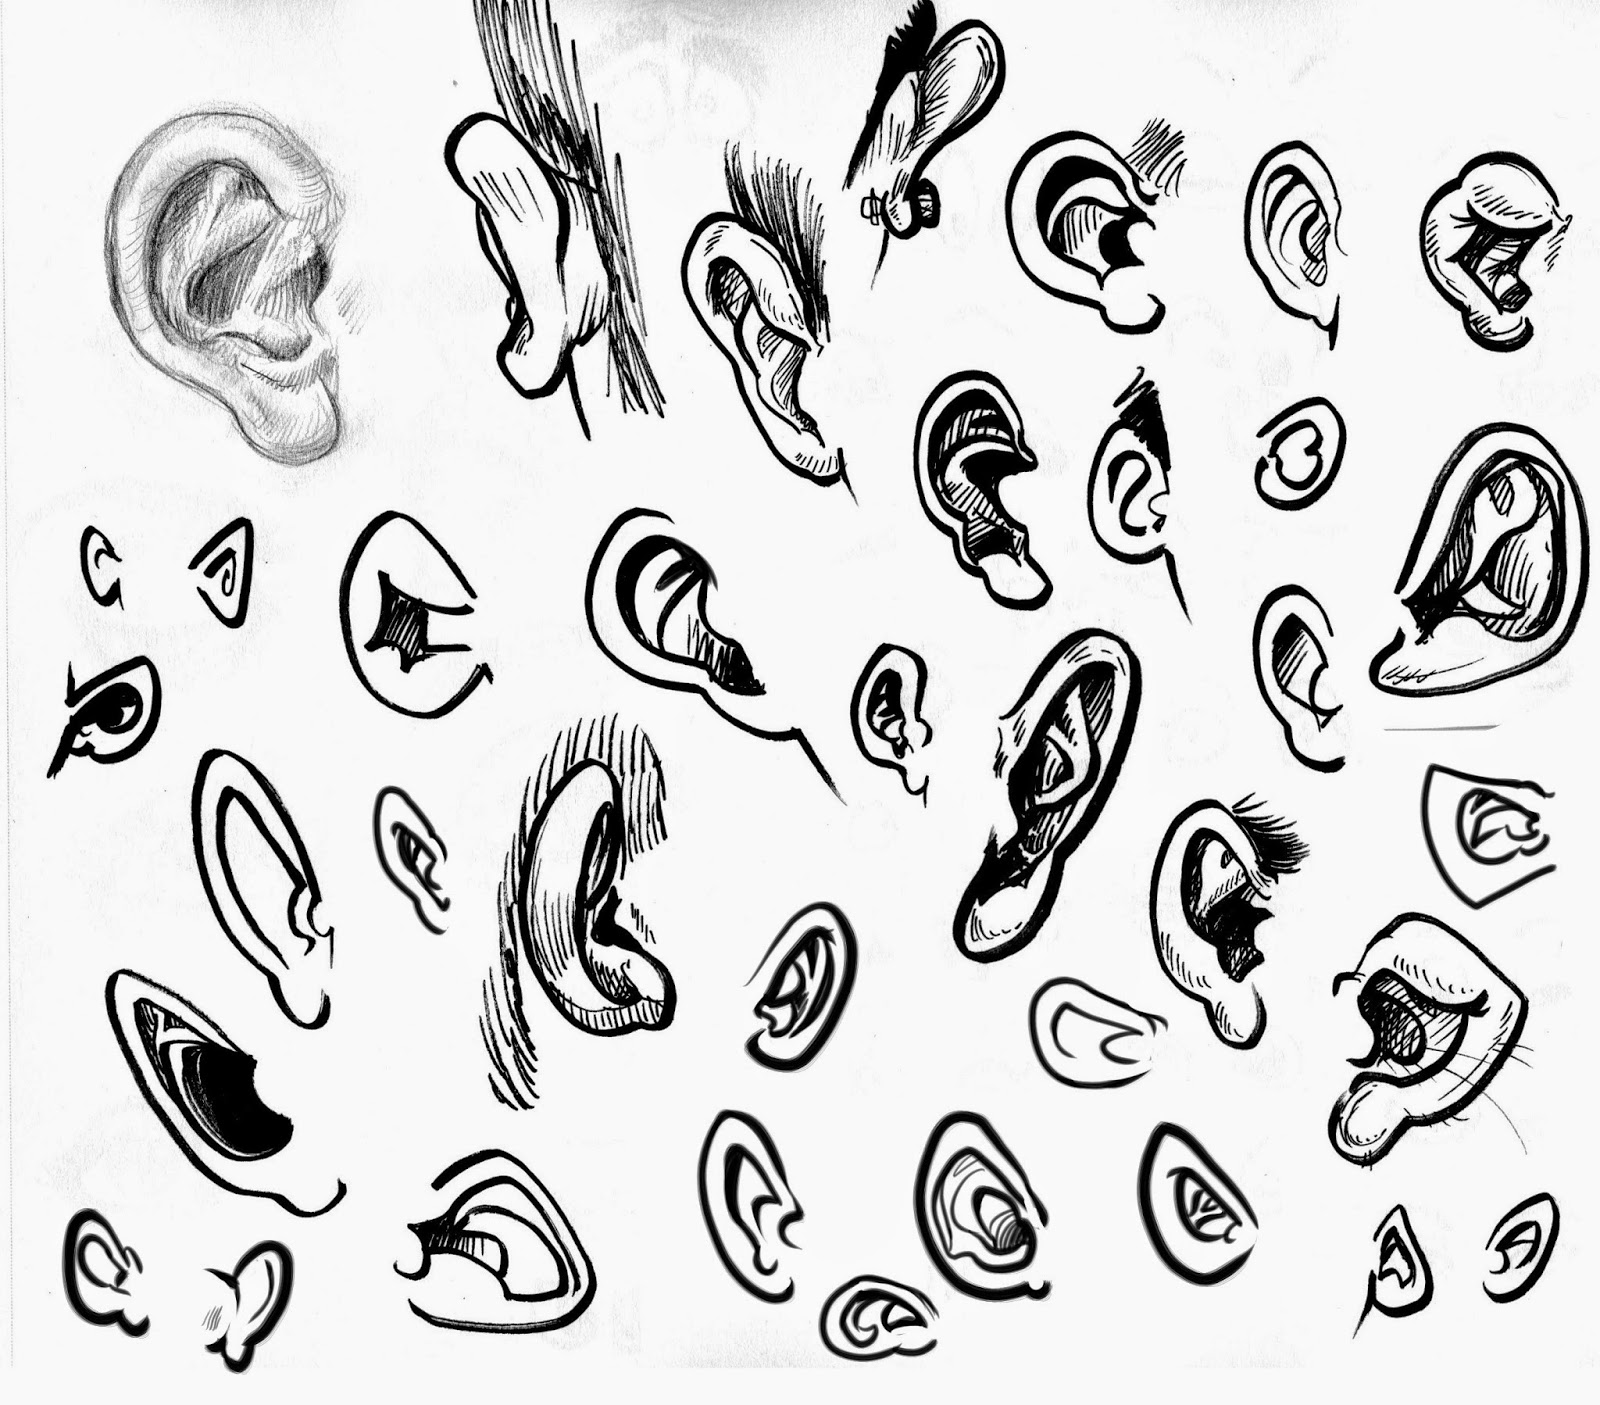 Character Design Noses : Daily sketches art by chris character design class